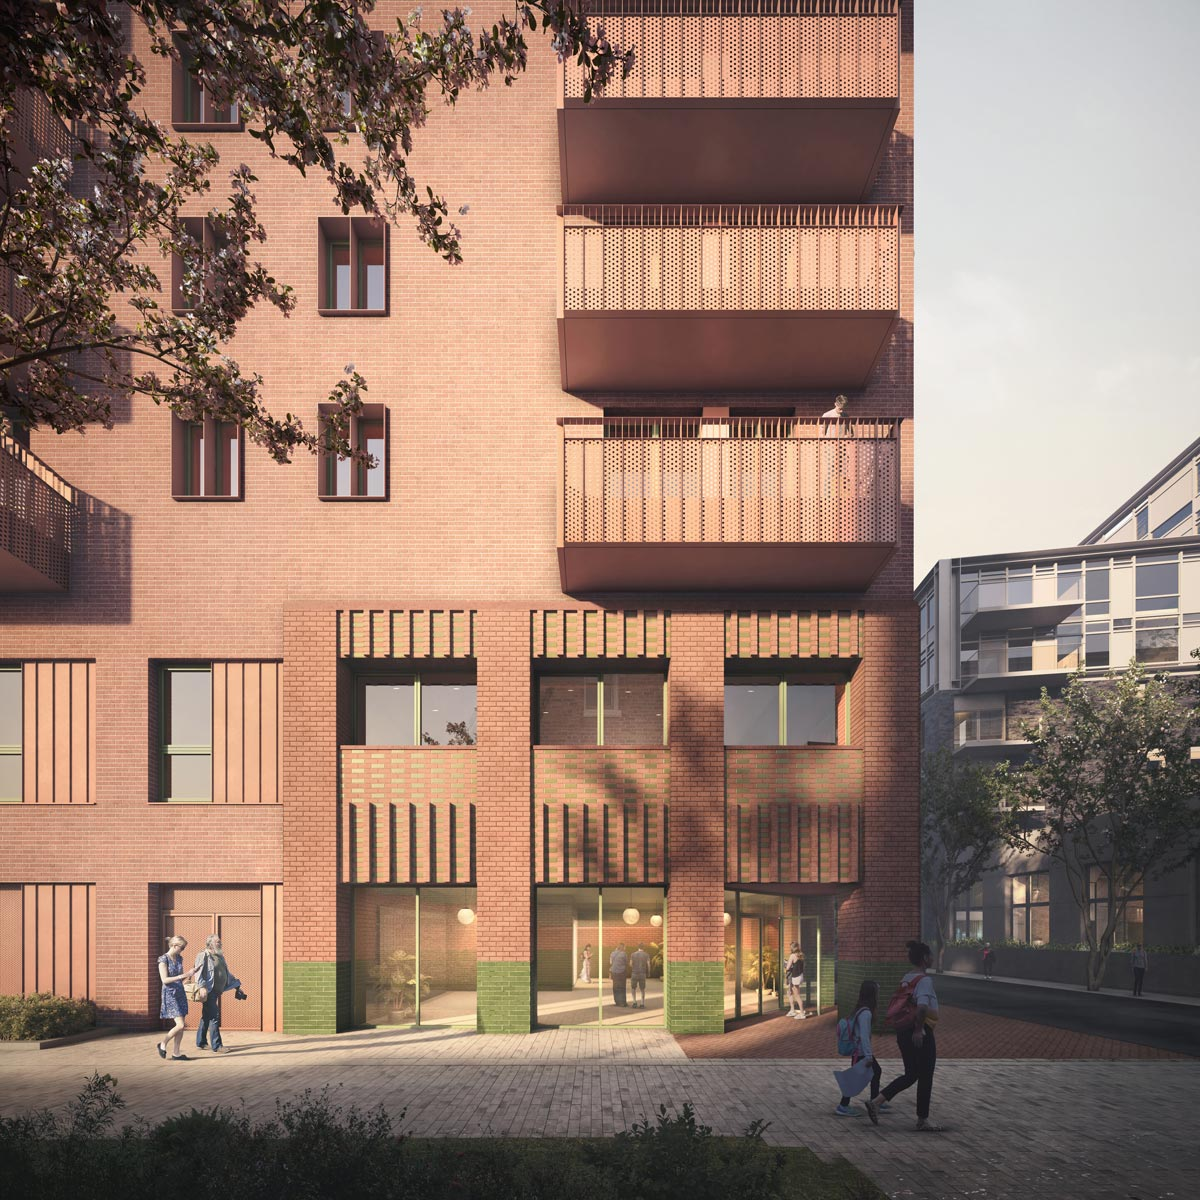 Planning submitted for new homes in Waltham Forest, part 2